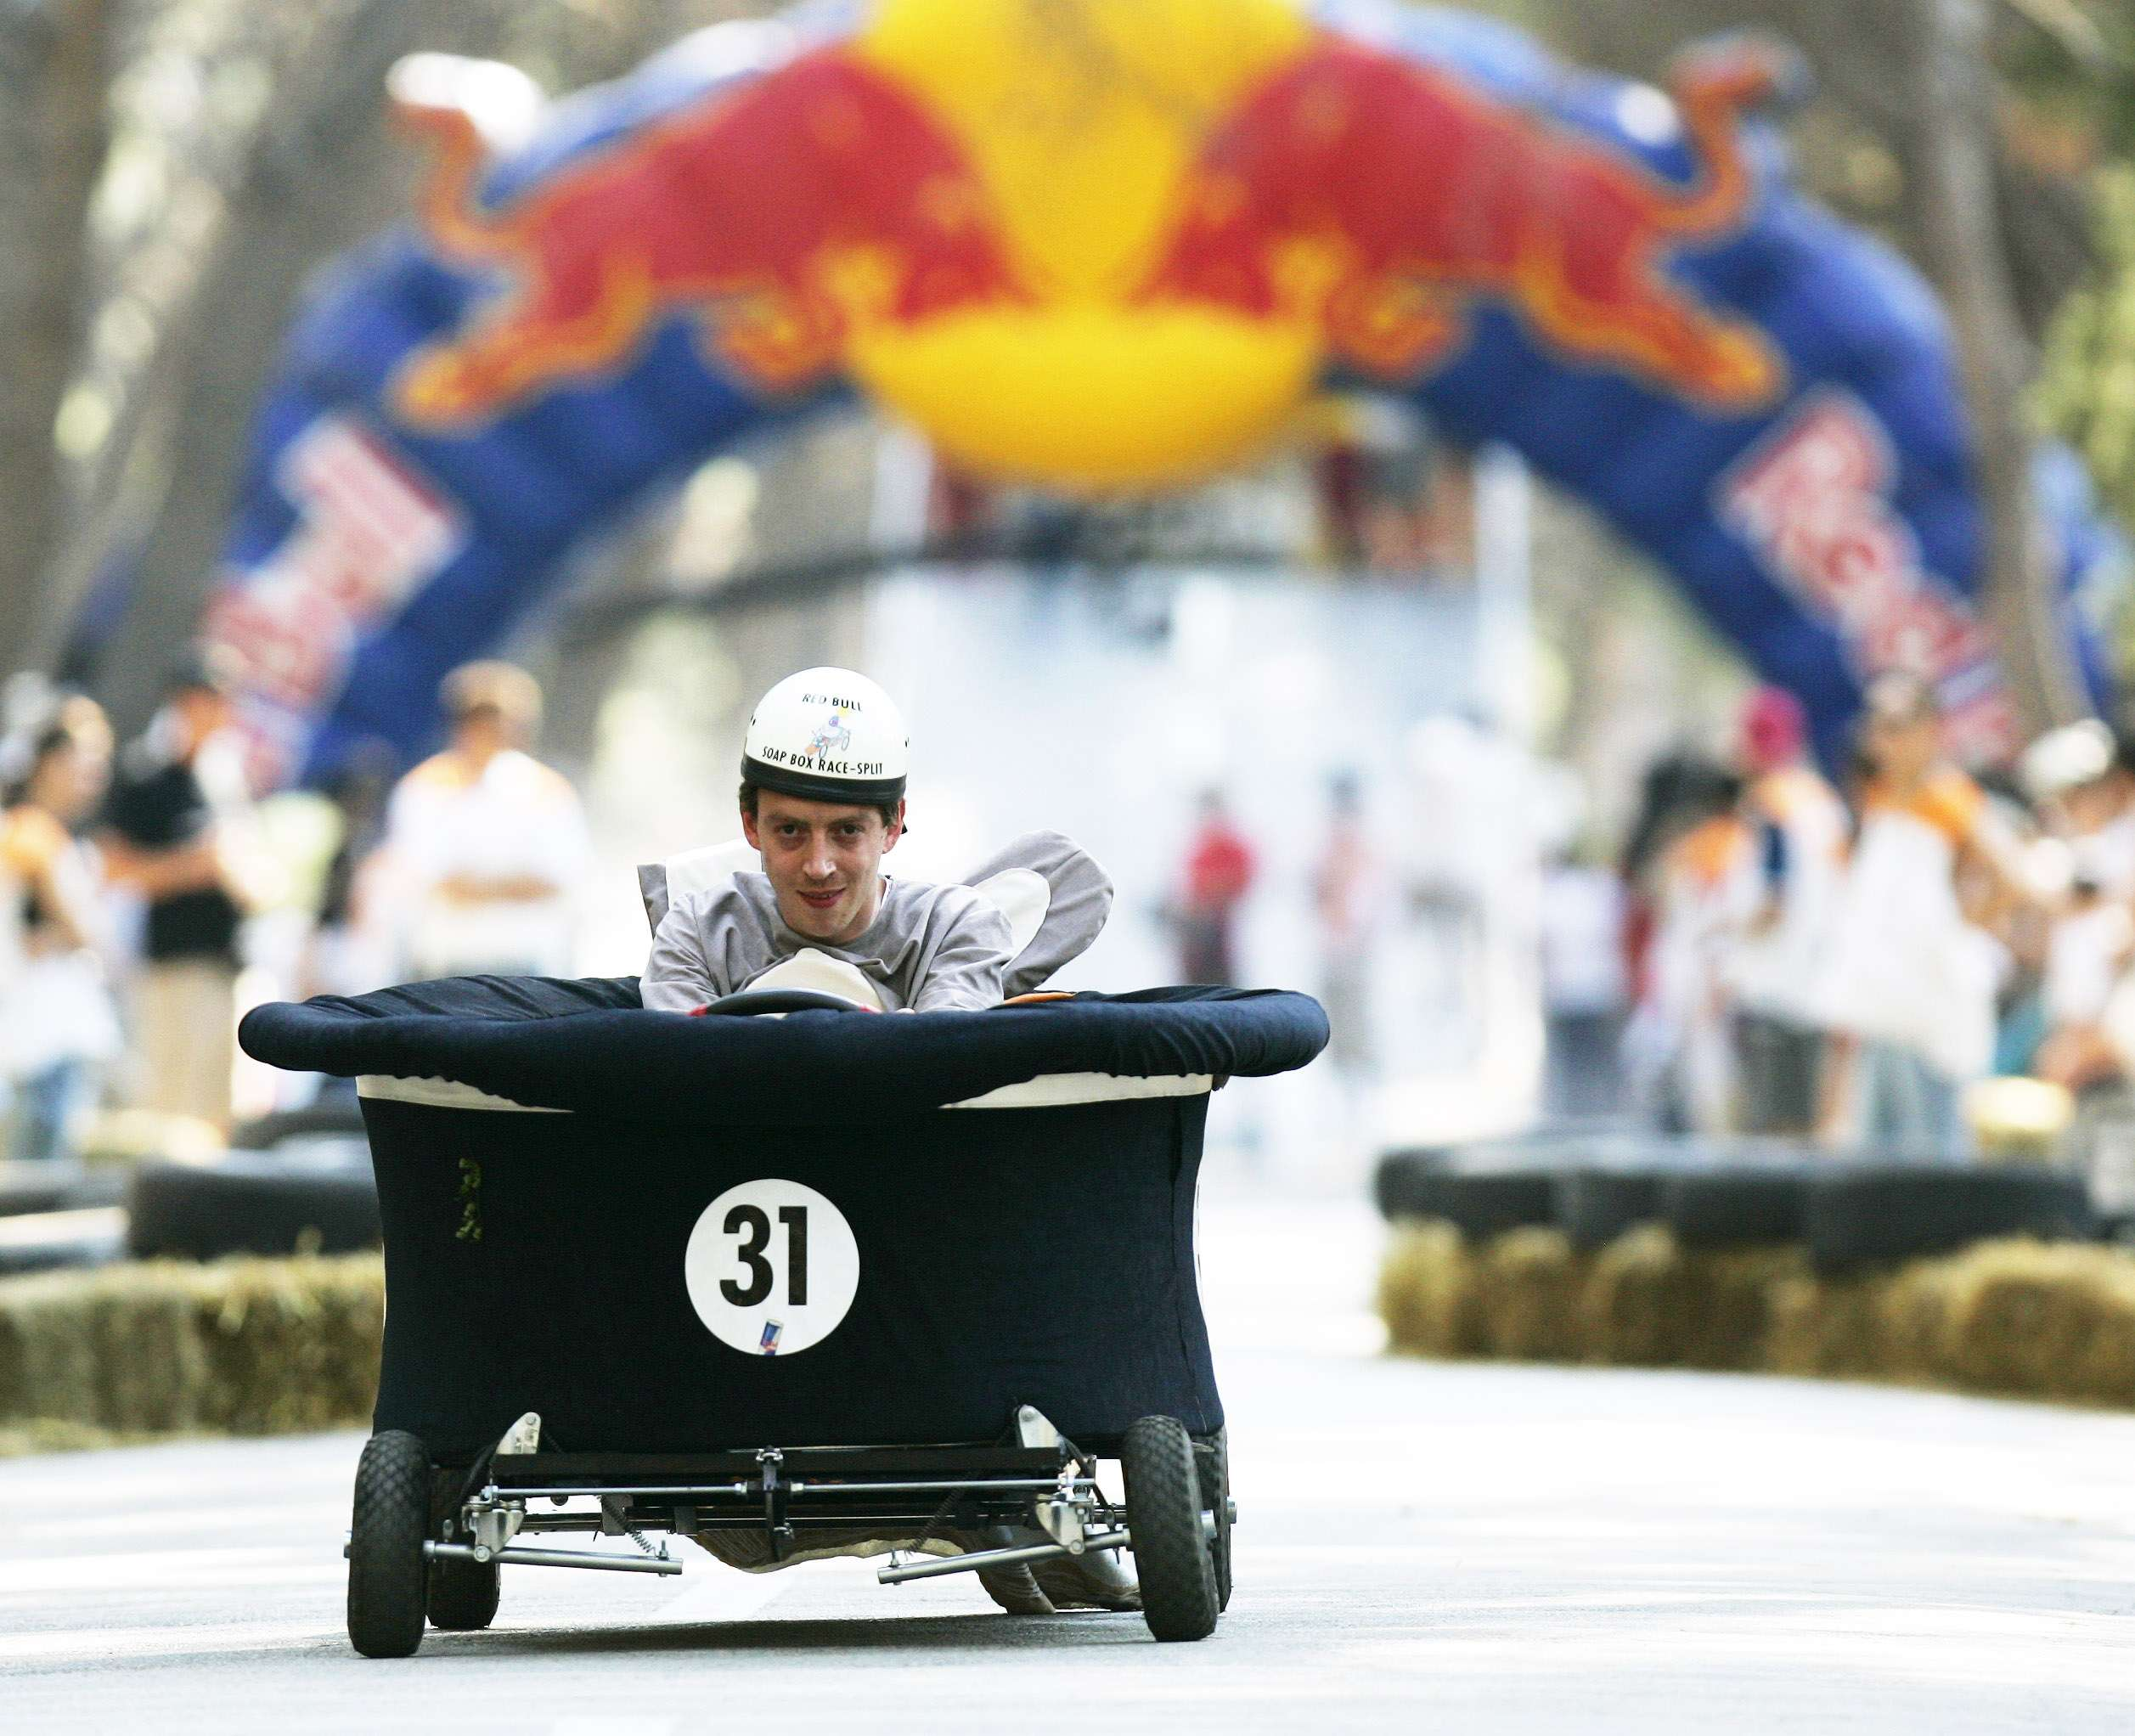 Croatian Soapbox race